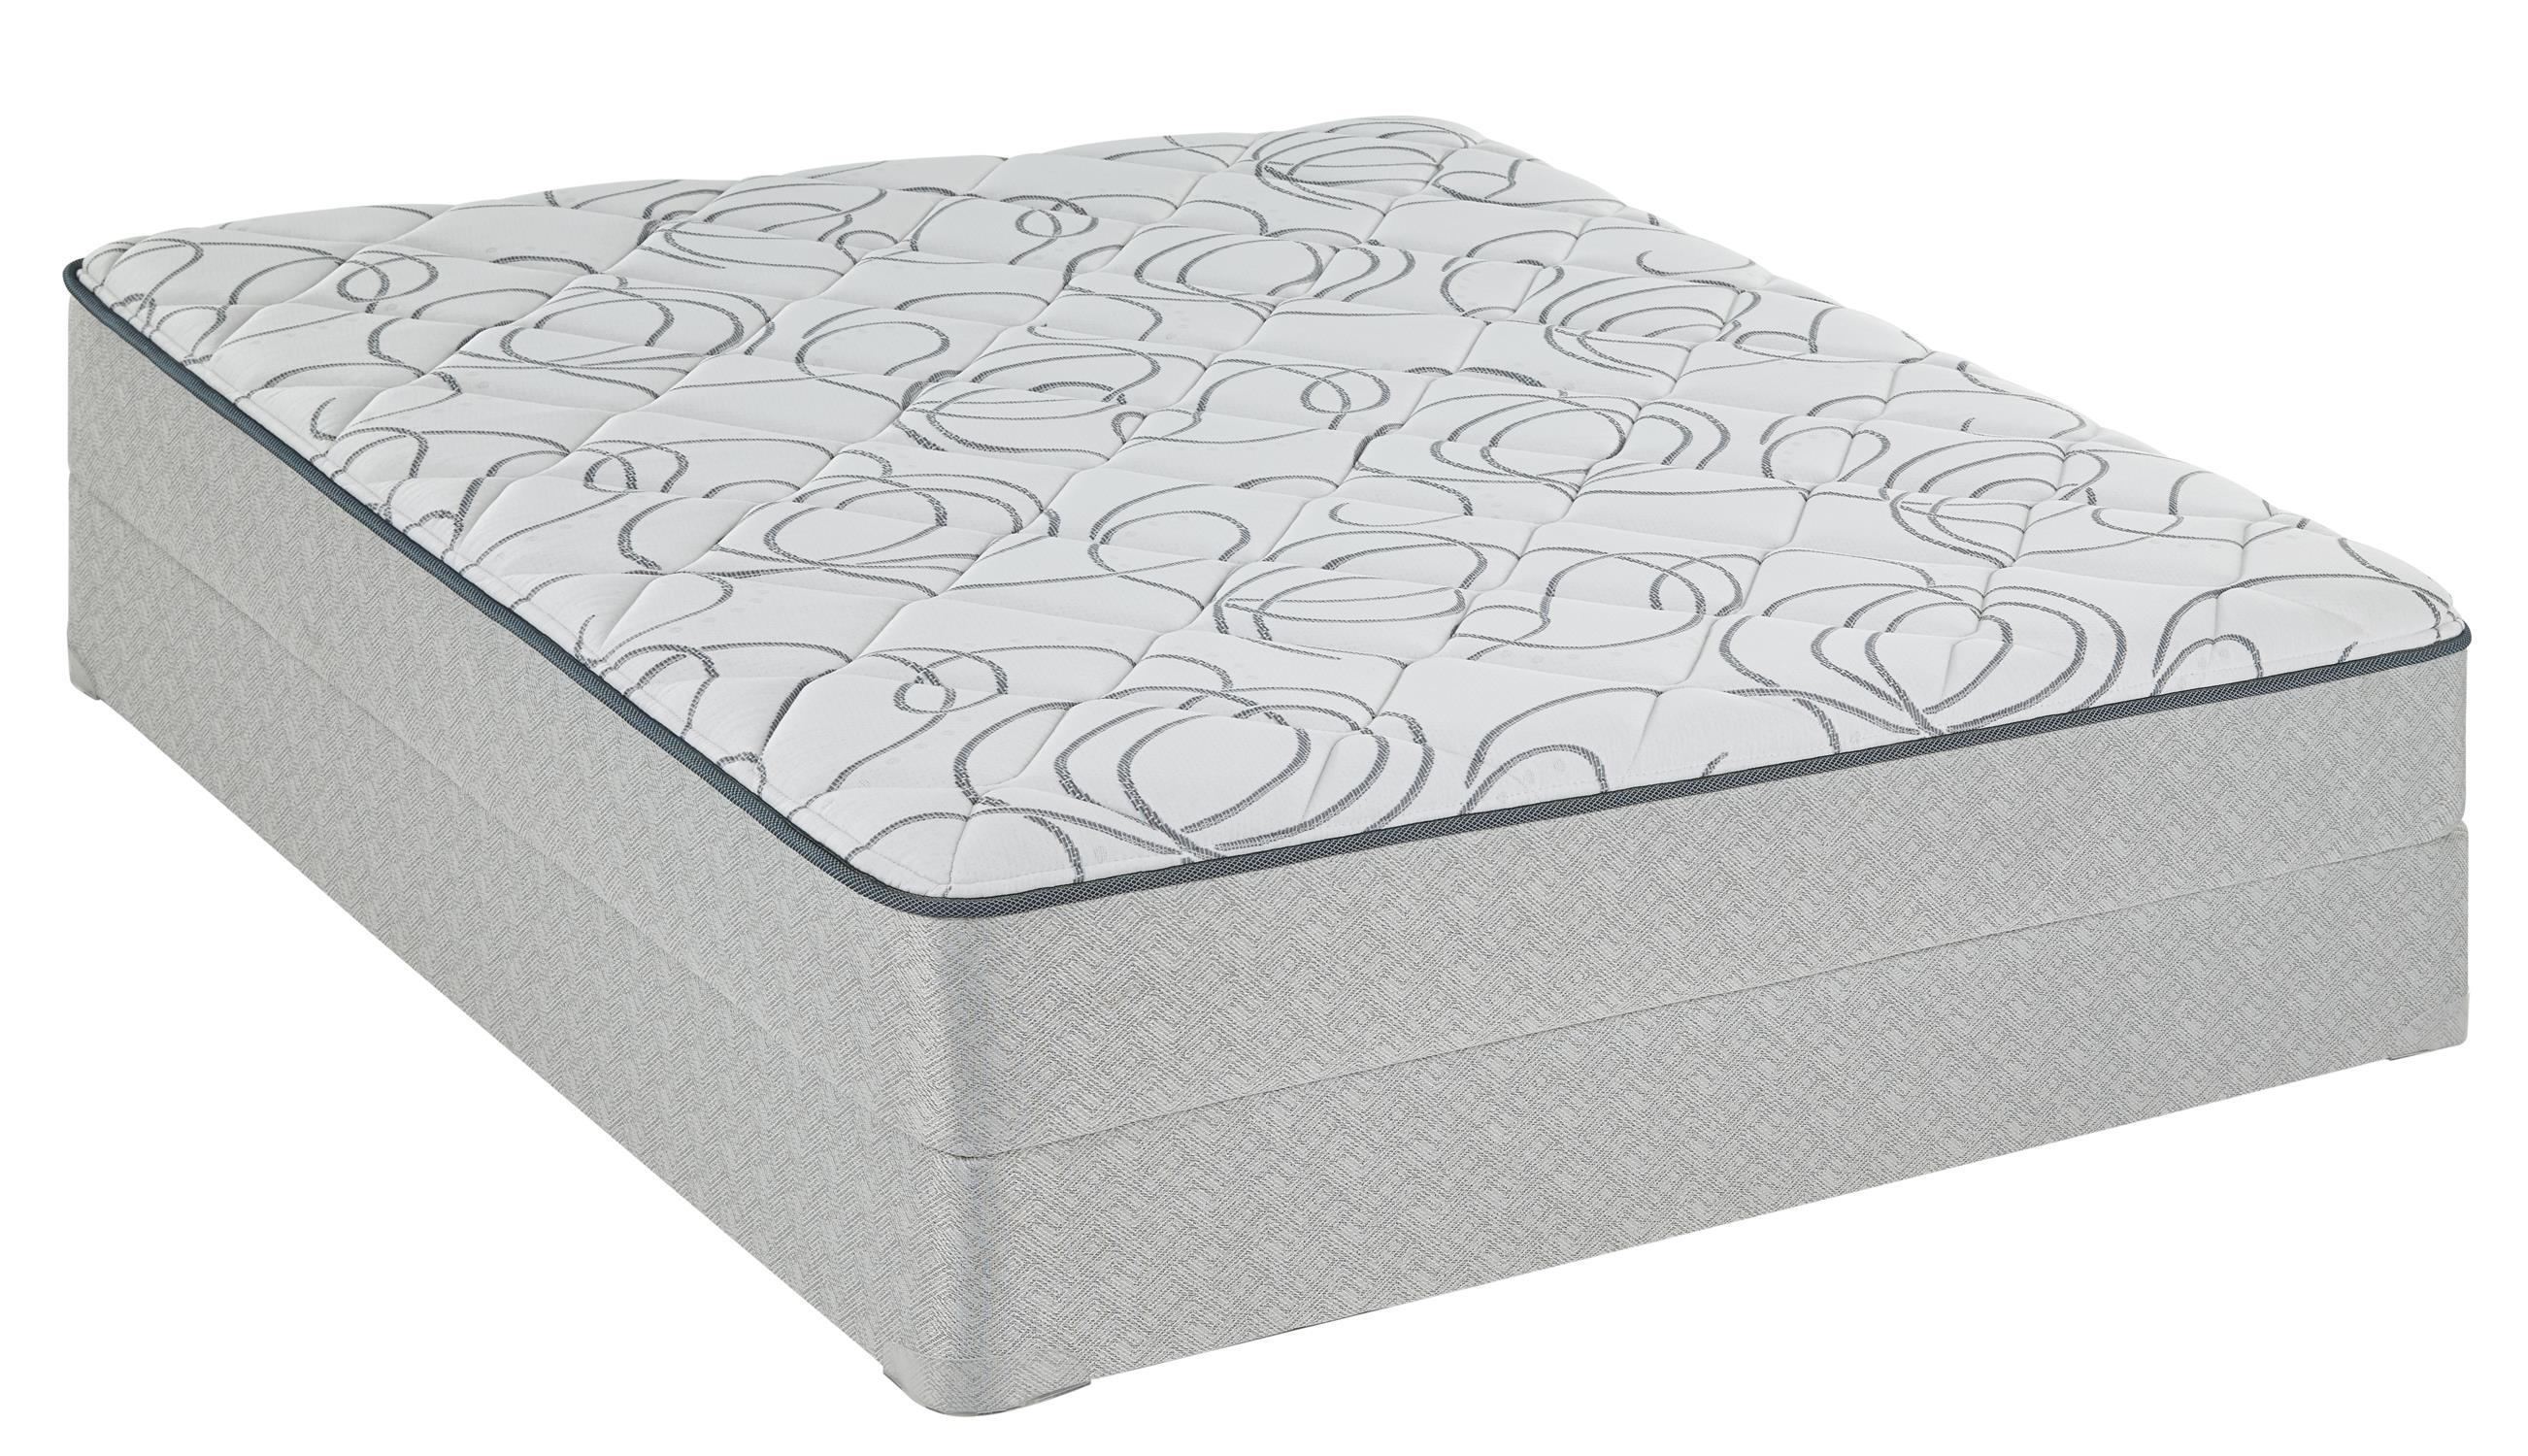 Sealy Sealy Watsonia Full Firm Mattress Set - Item Number: FirmTT-F+FoundationF